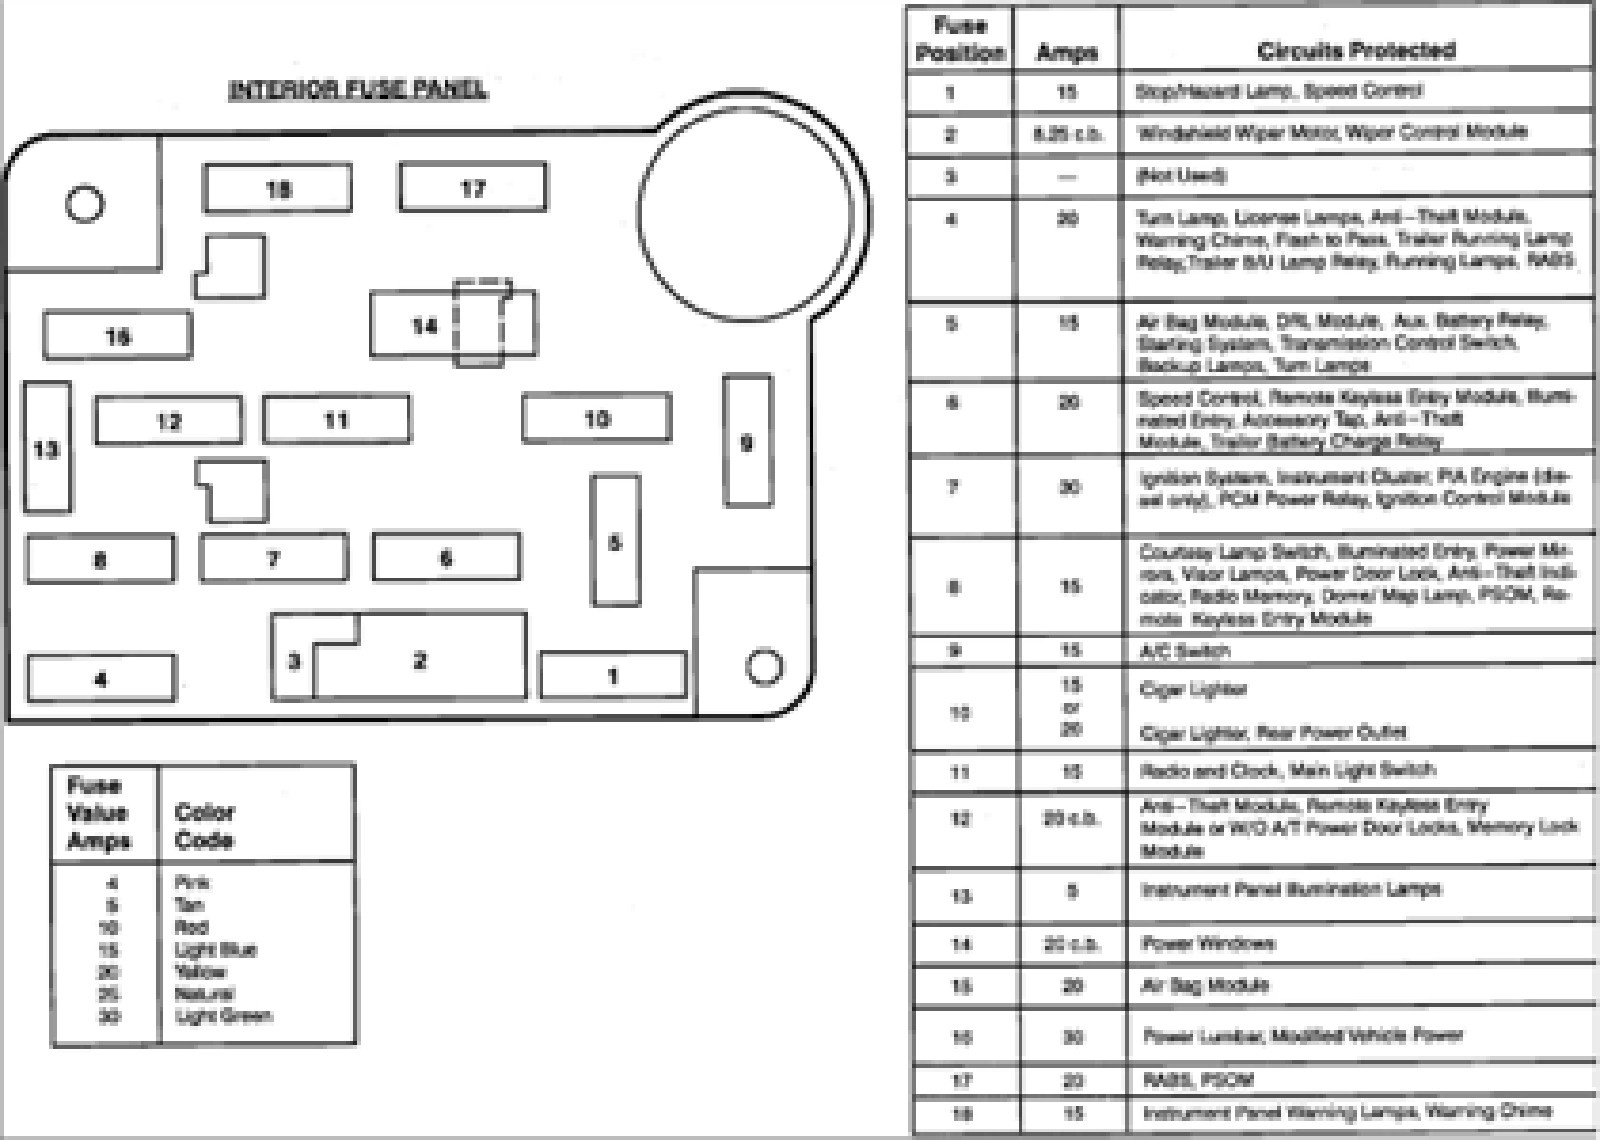 2006 ford e150 van fuse diagram free download simple wiring diagram rh  david huggett co uk 2001 ford e350 fuse box 2003 ford e350 fuse box location